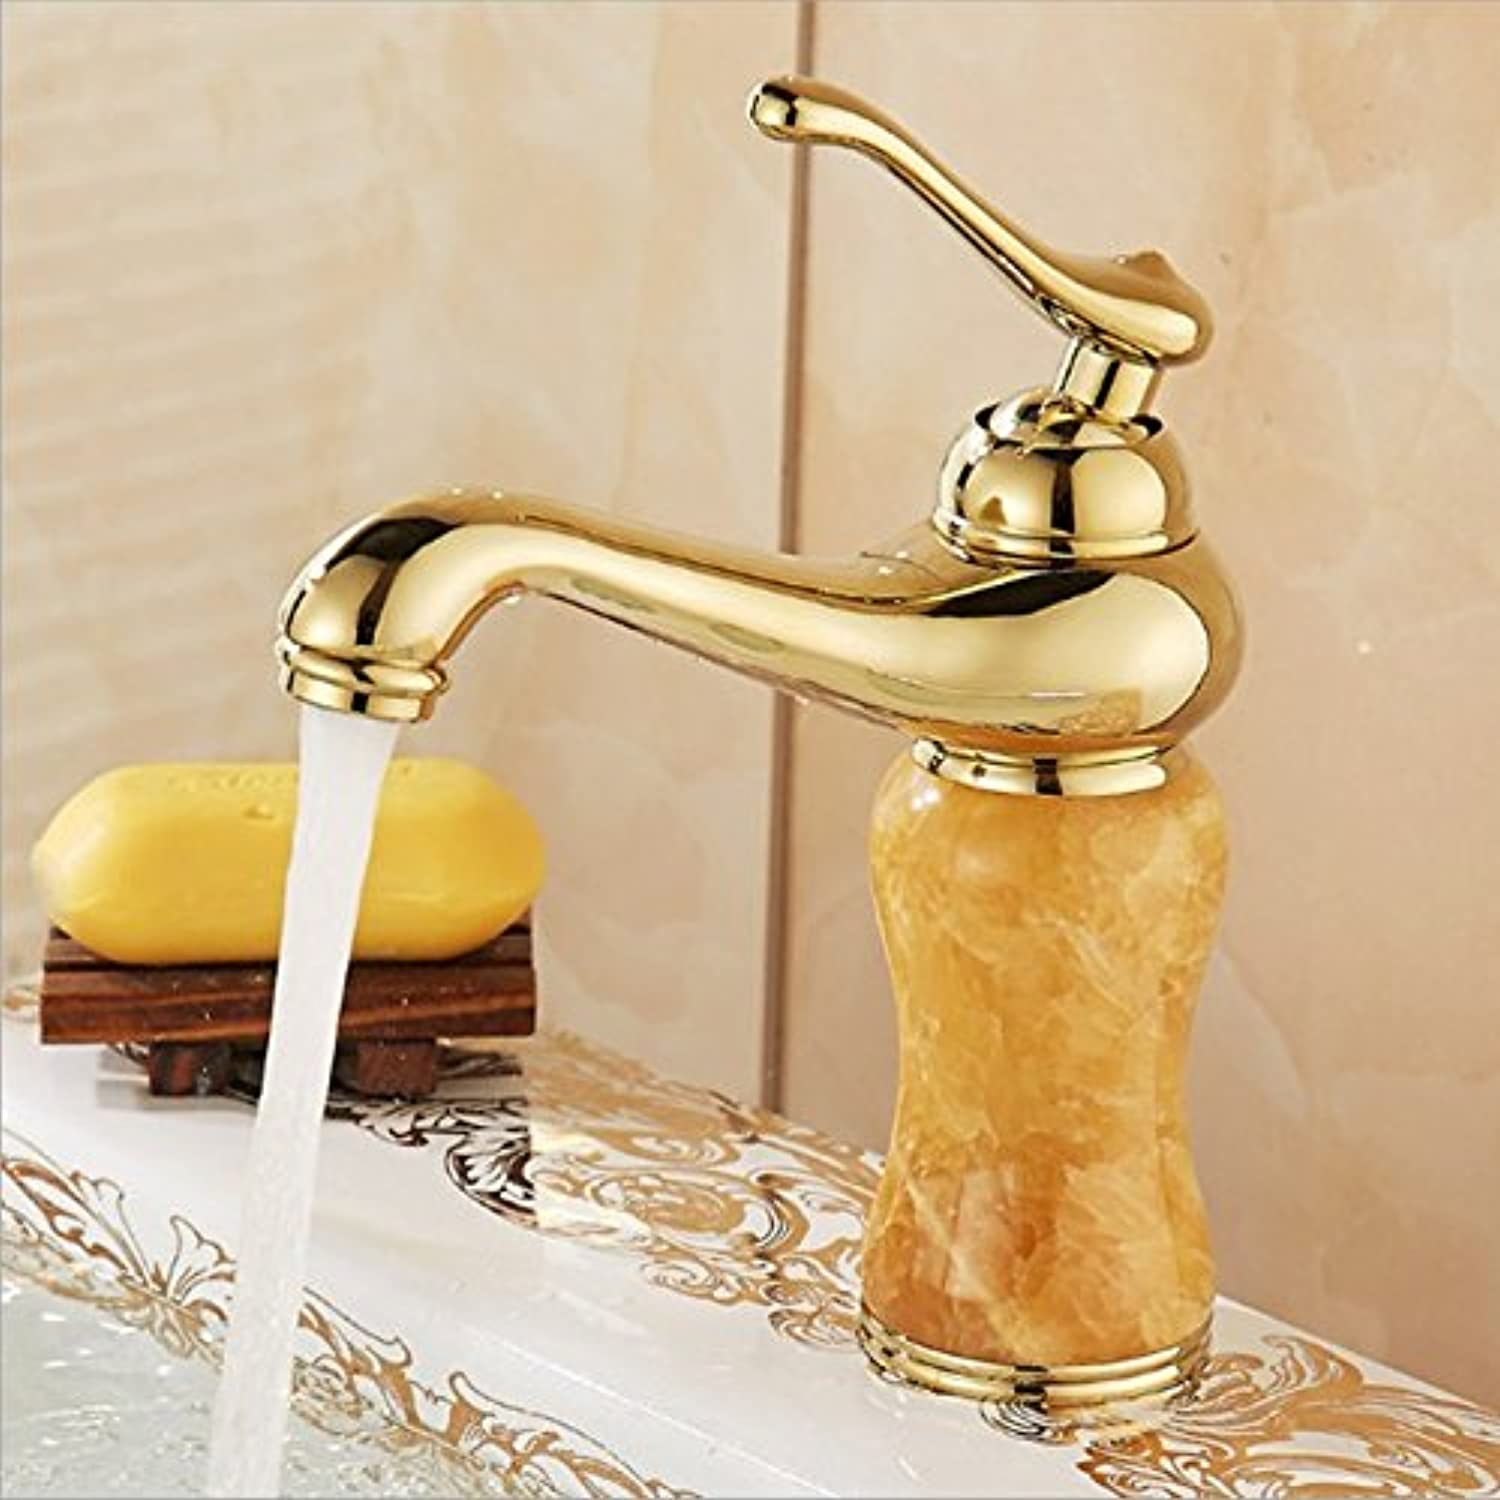 Makej Archaize Cold Hot Faucet Basin Lower Basin